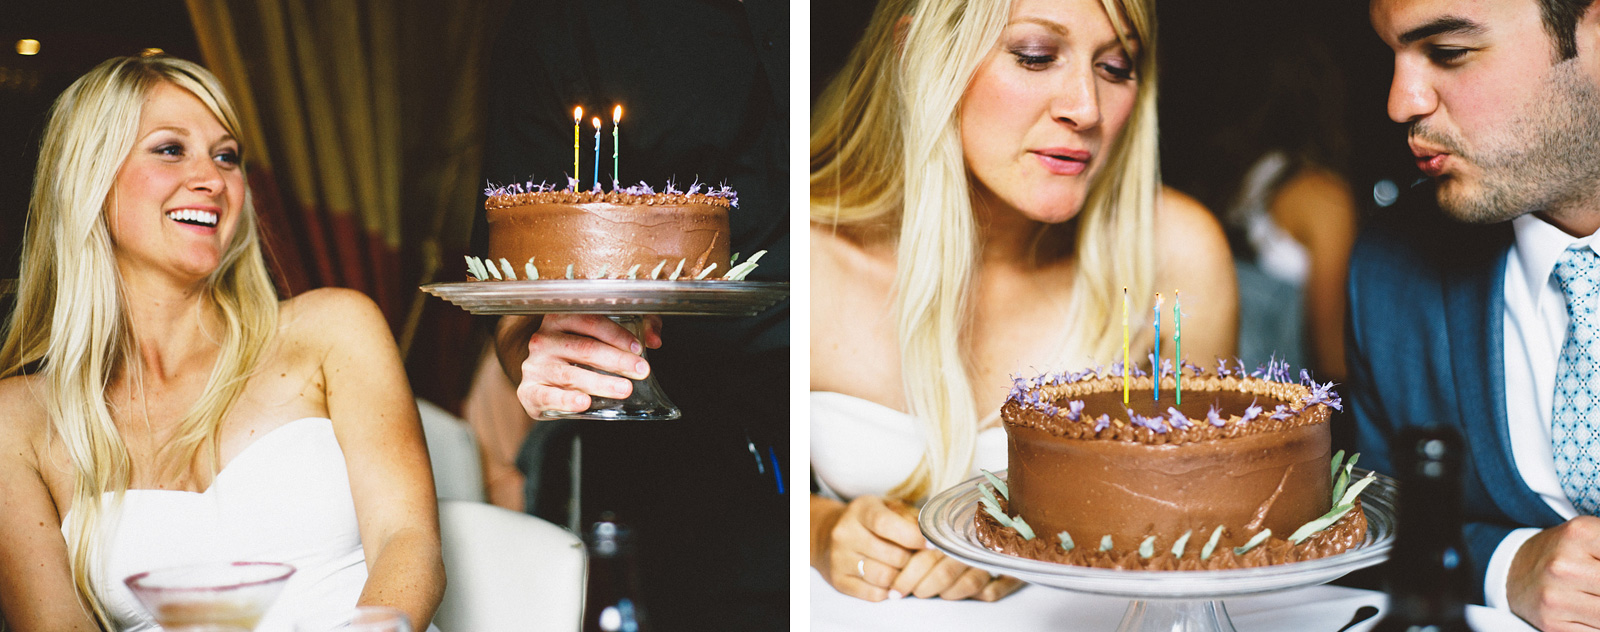 Blowing out candles on their cake | San Francisco City Hall Wedding